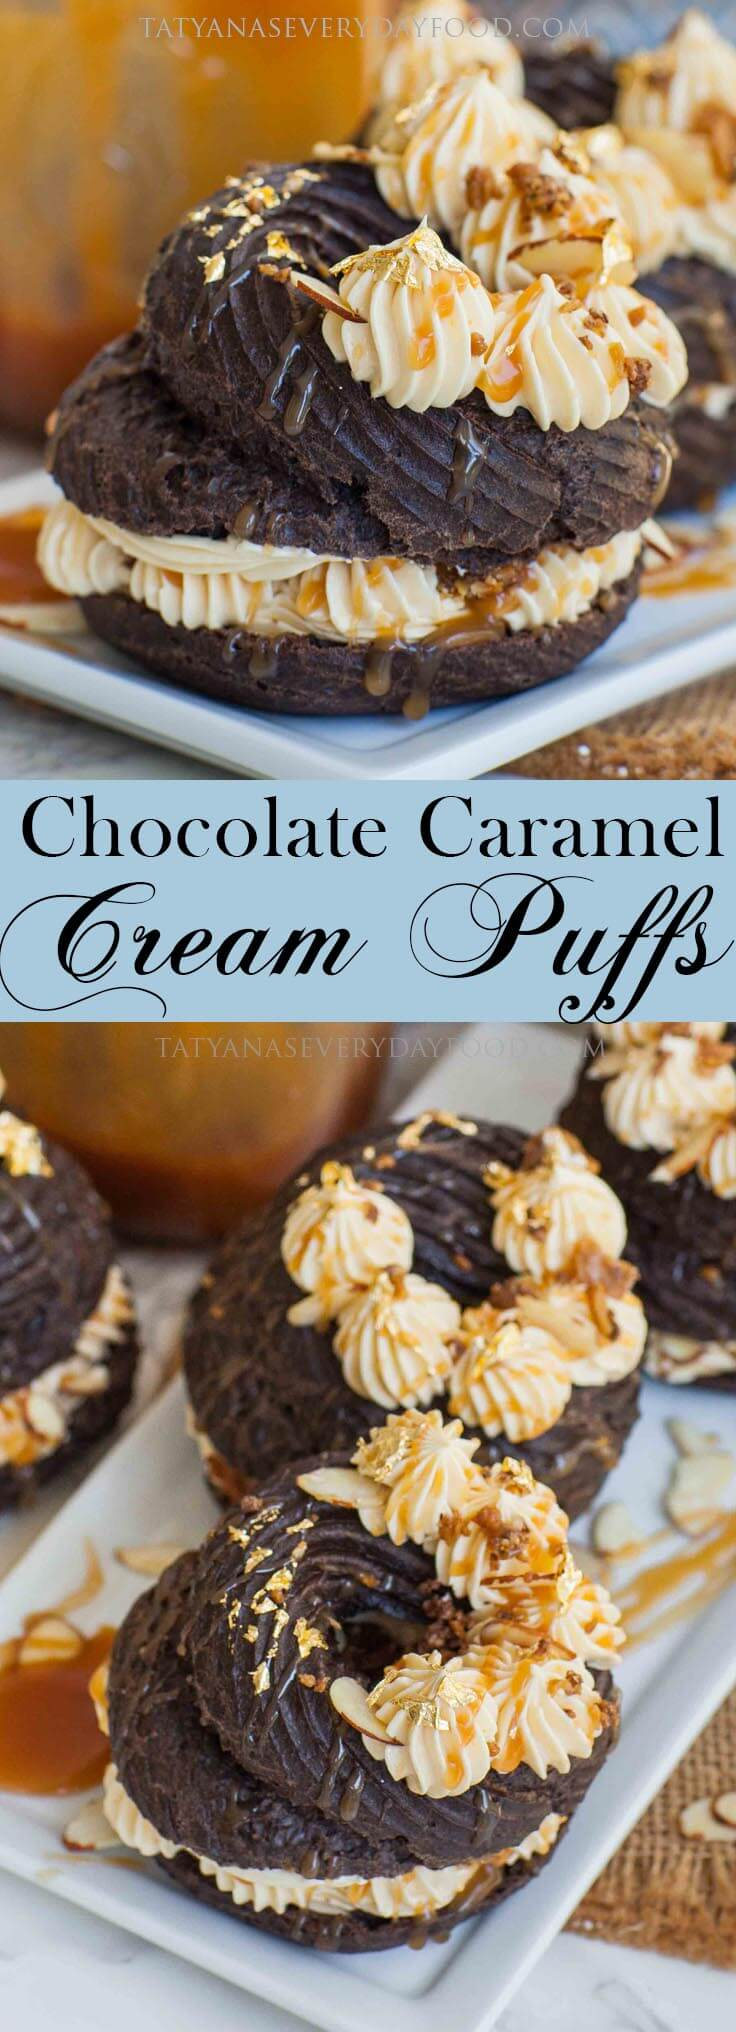 Fancy Caramel Chocolate Cream Puffs recipe with caramel filling